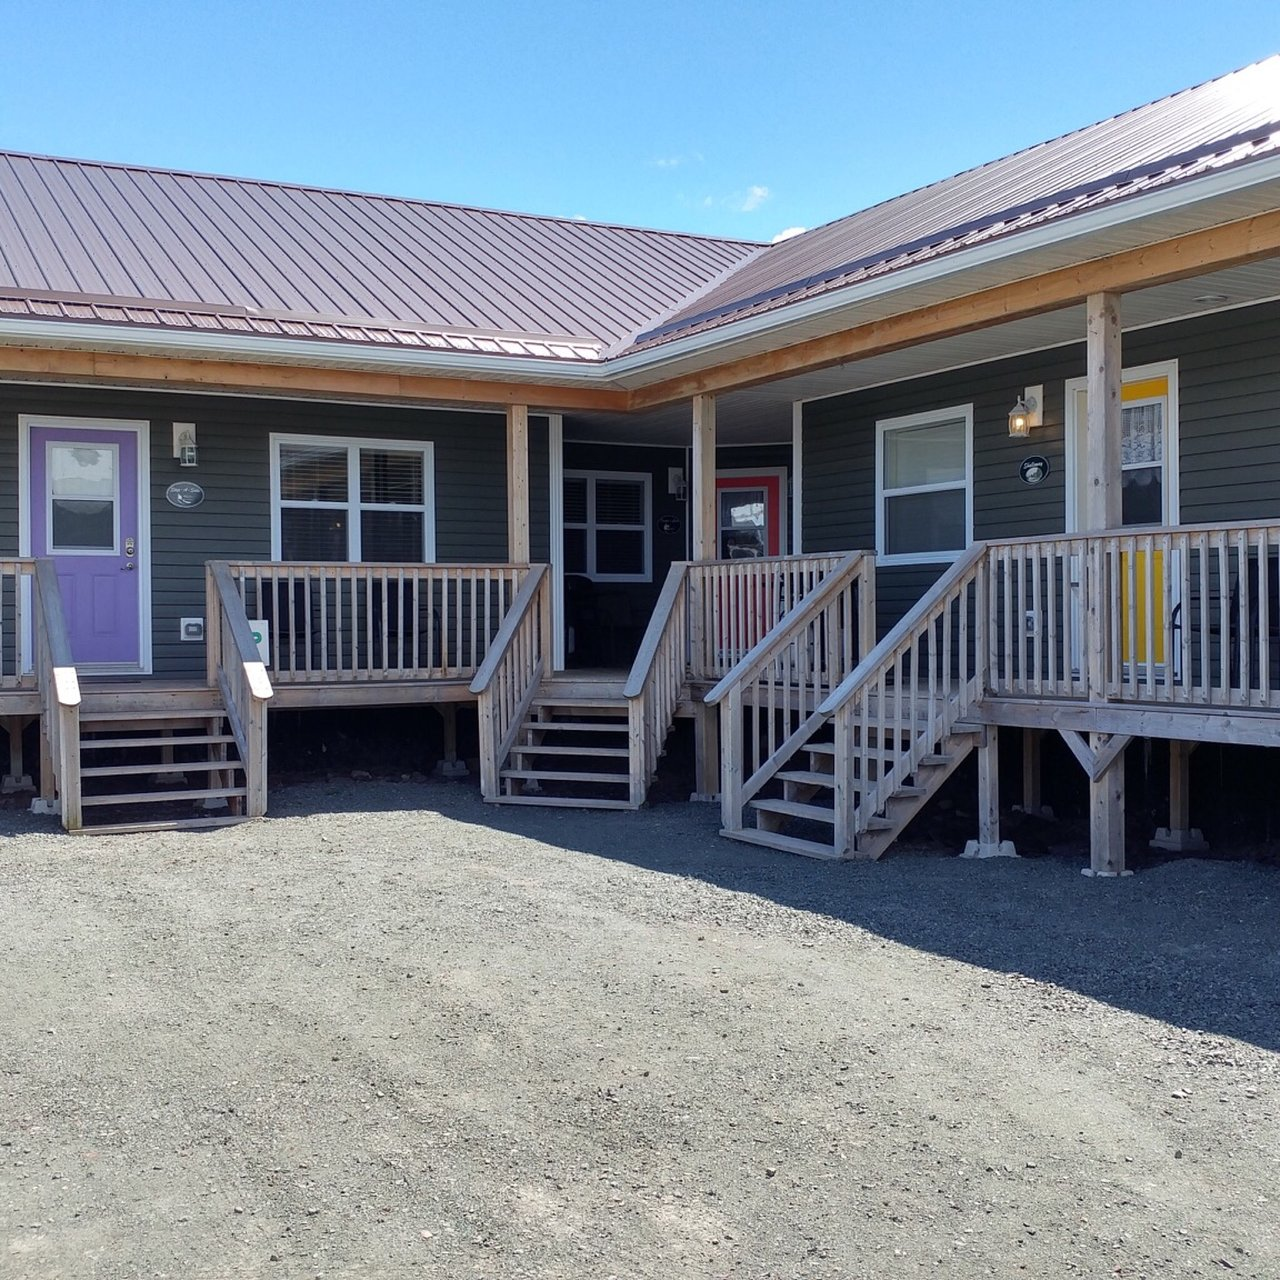 Burin Efficiency Units back building located in Salt Pond, Burin